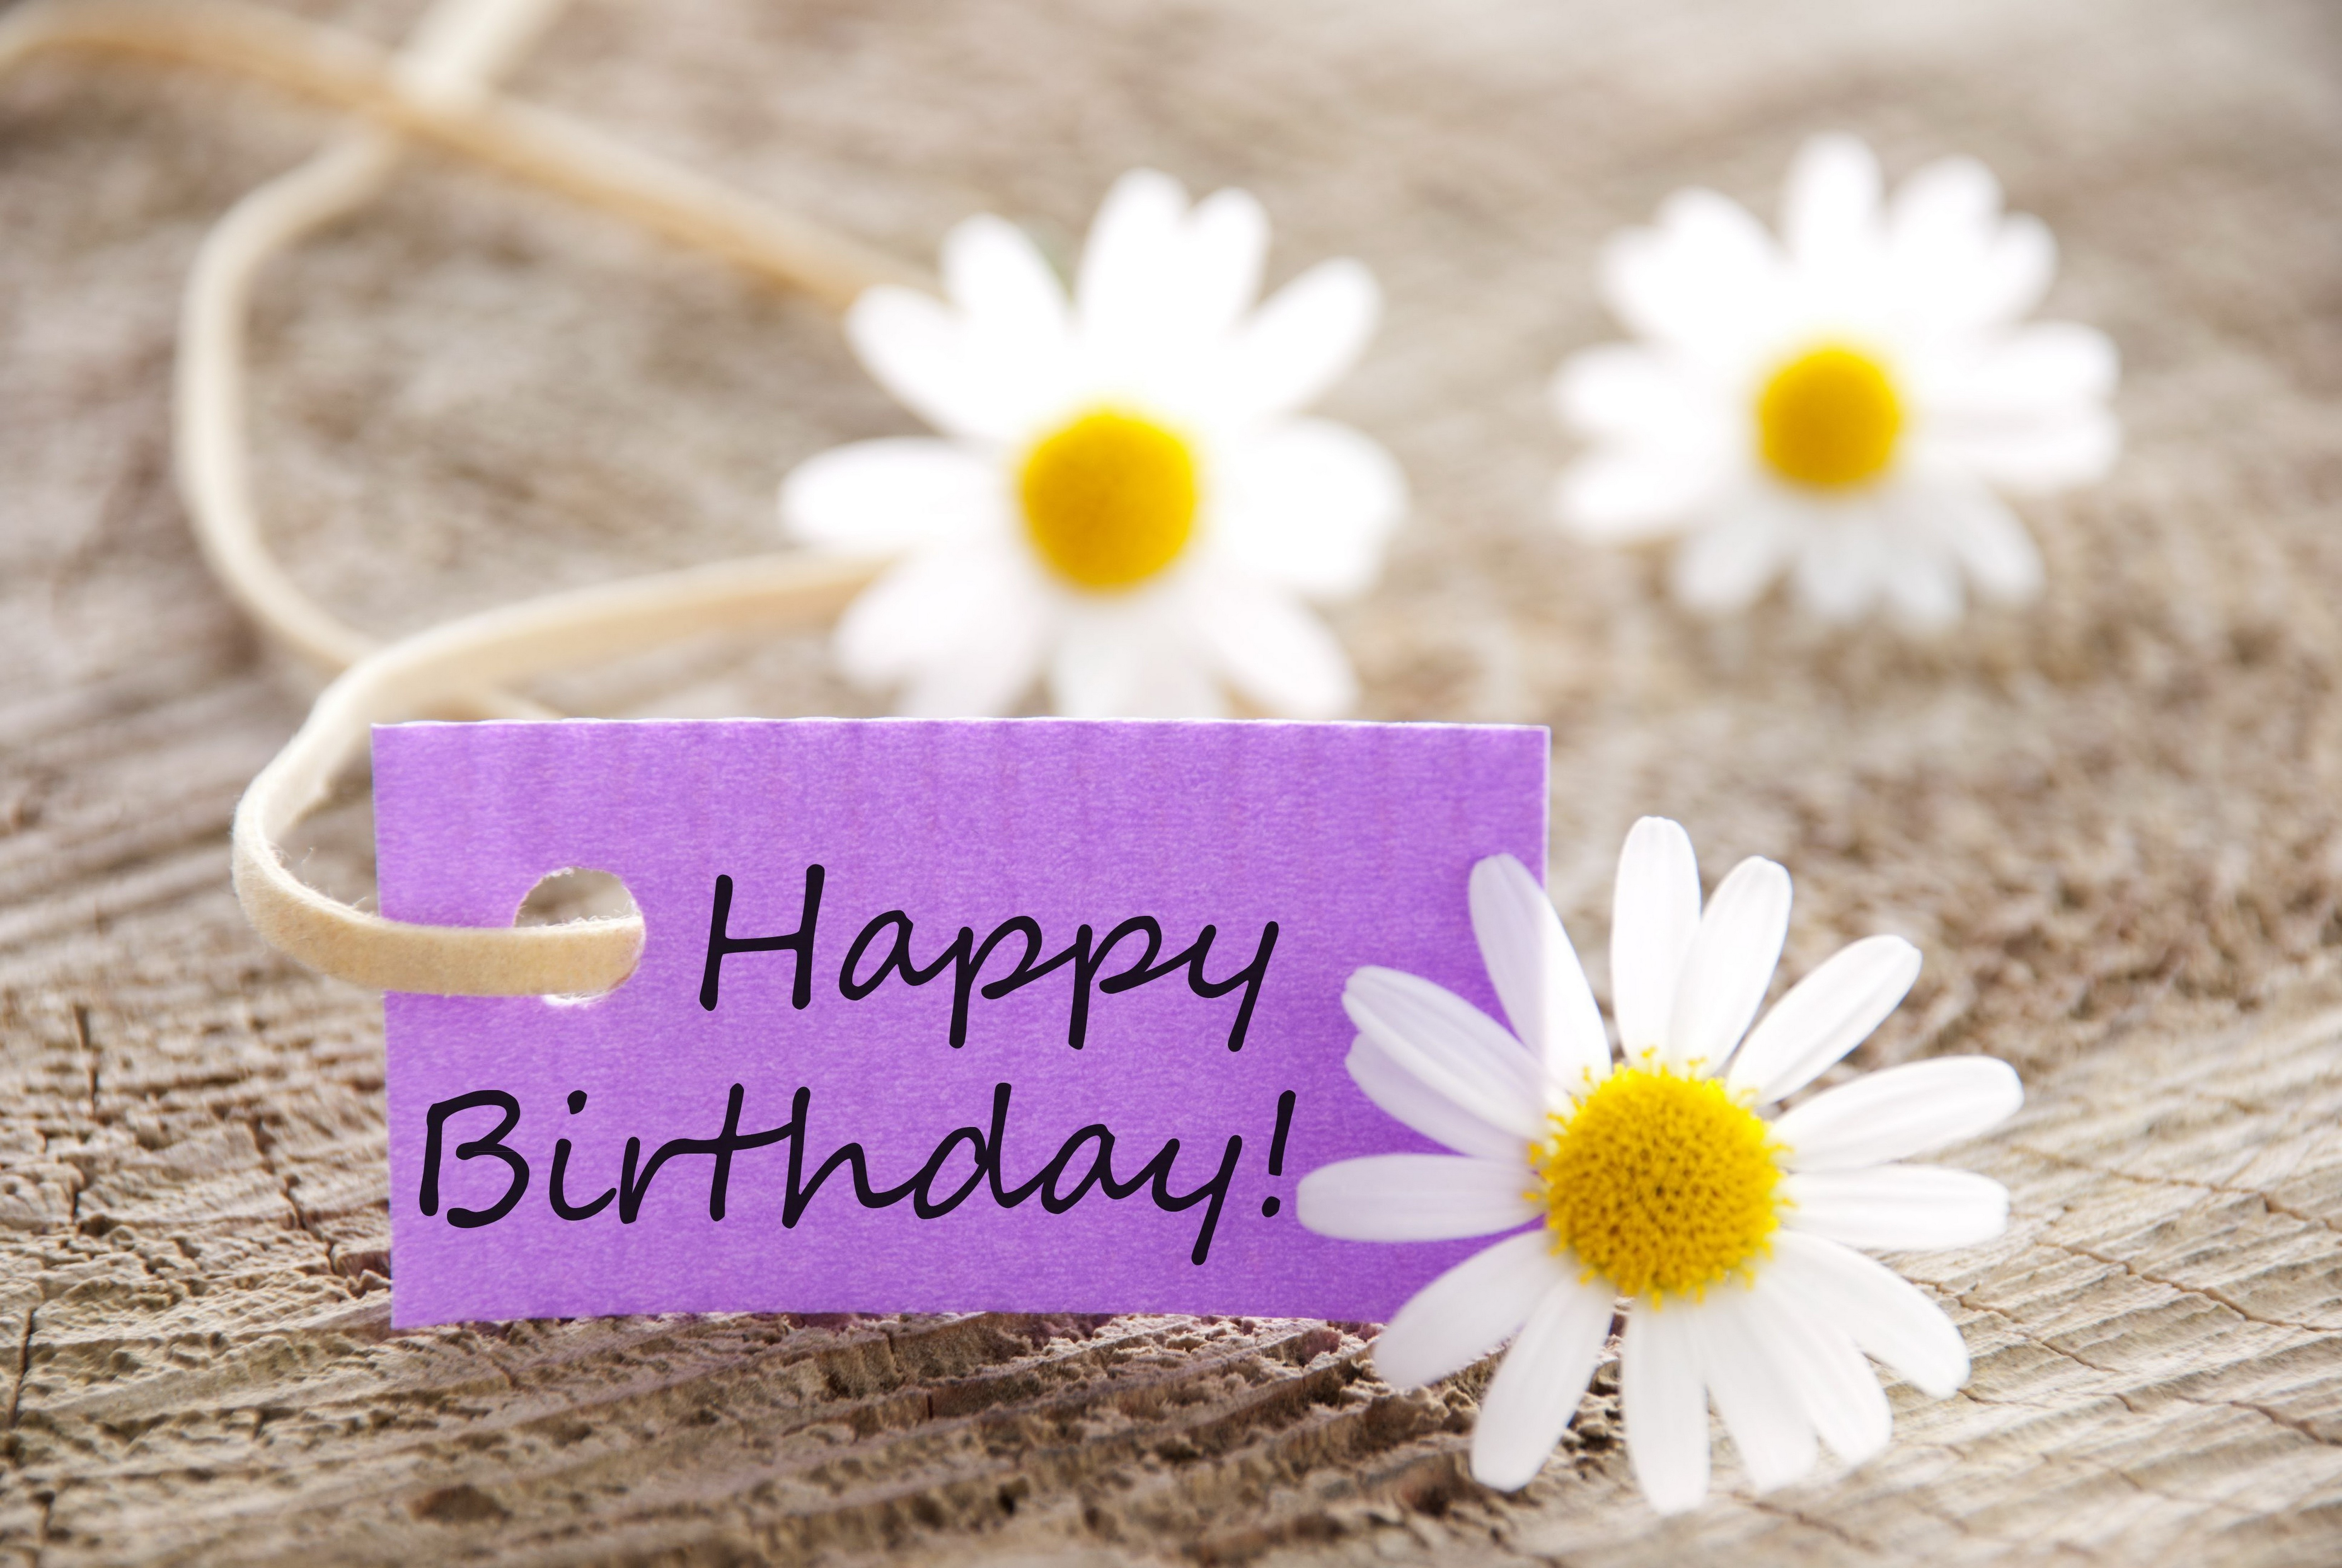 birthday special images hd ; happy-birthday-hd-wallpaper-194